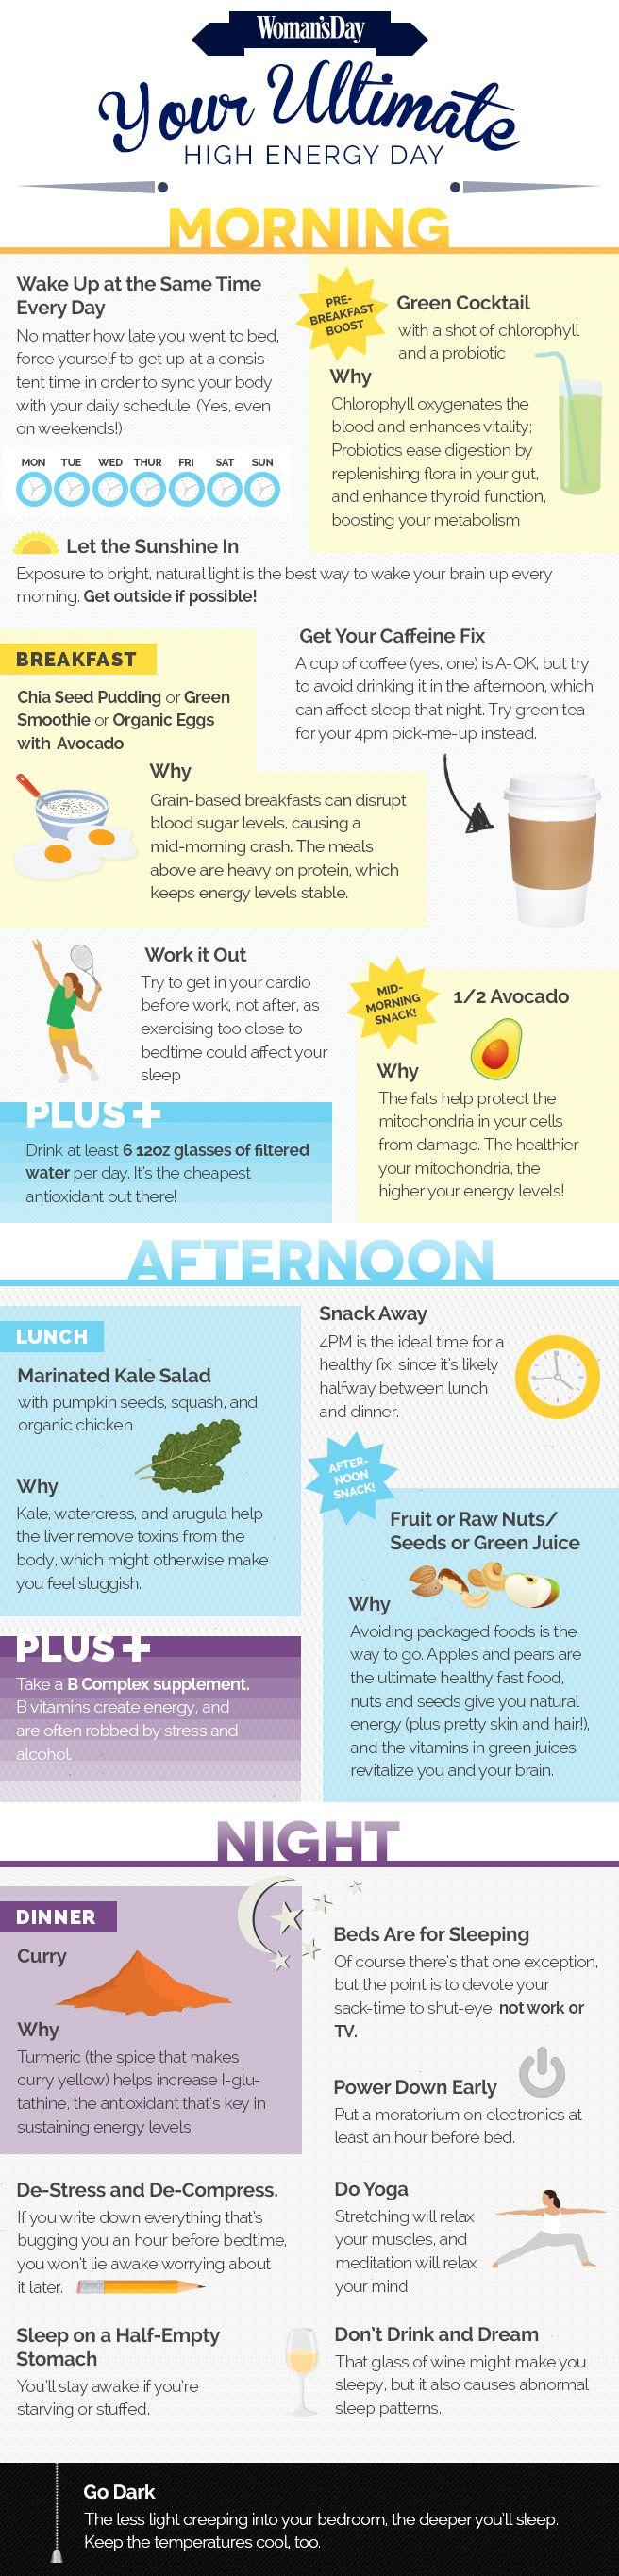 Effective Health And Nutrition Tips For High Energy Day Infographic